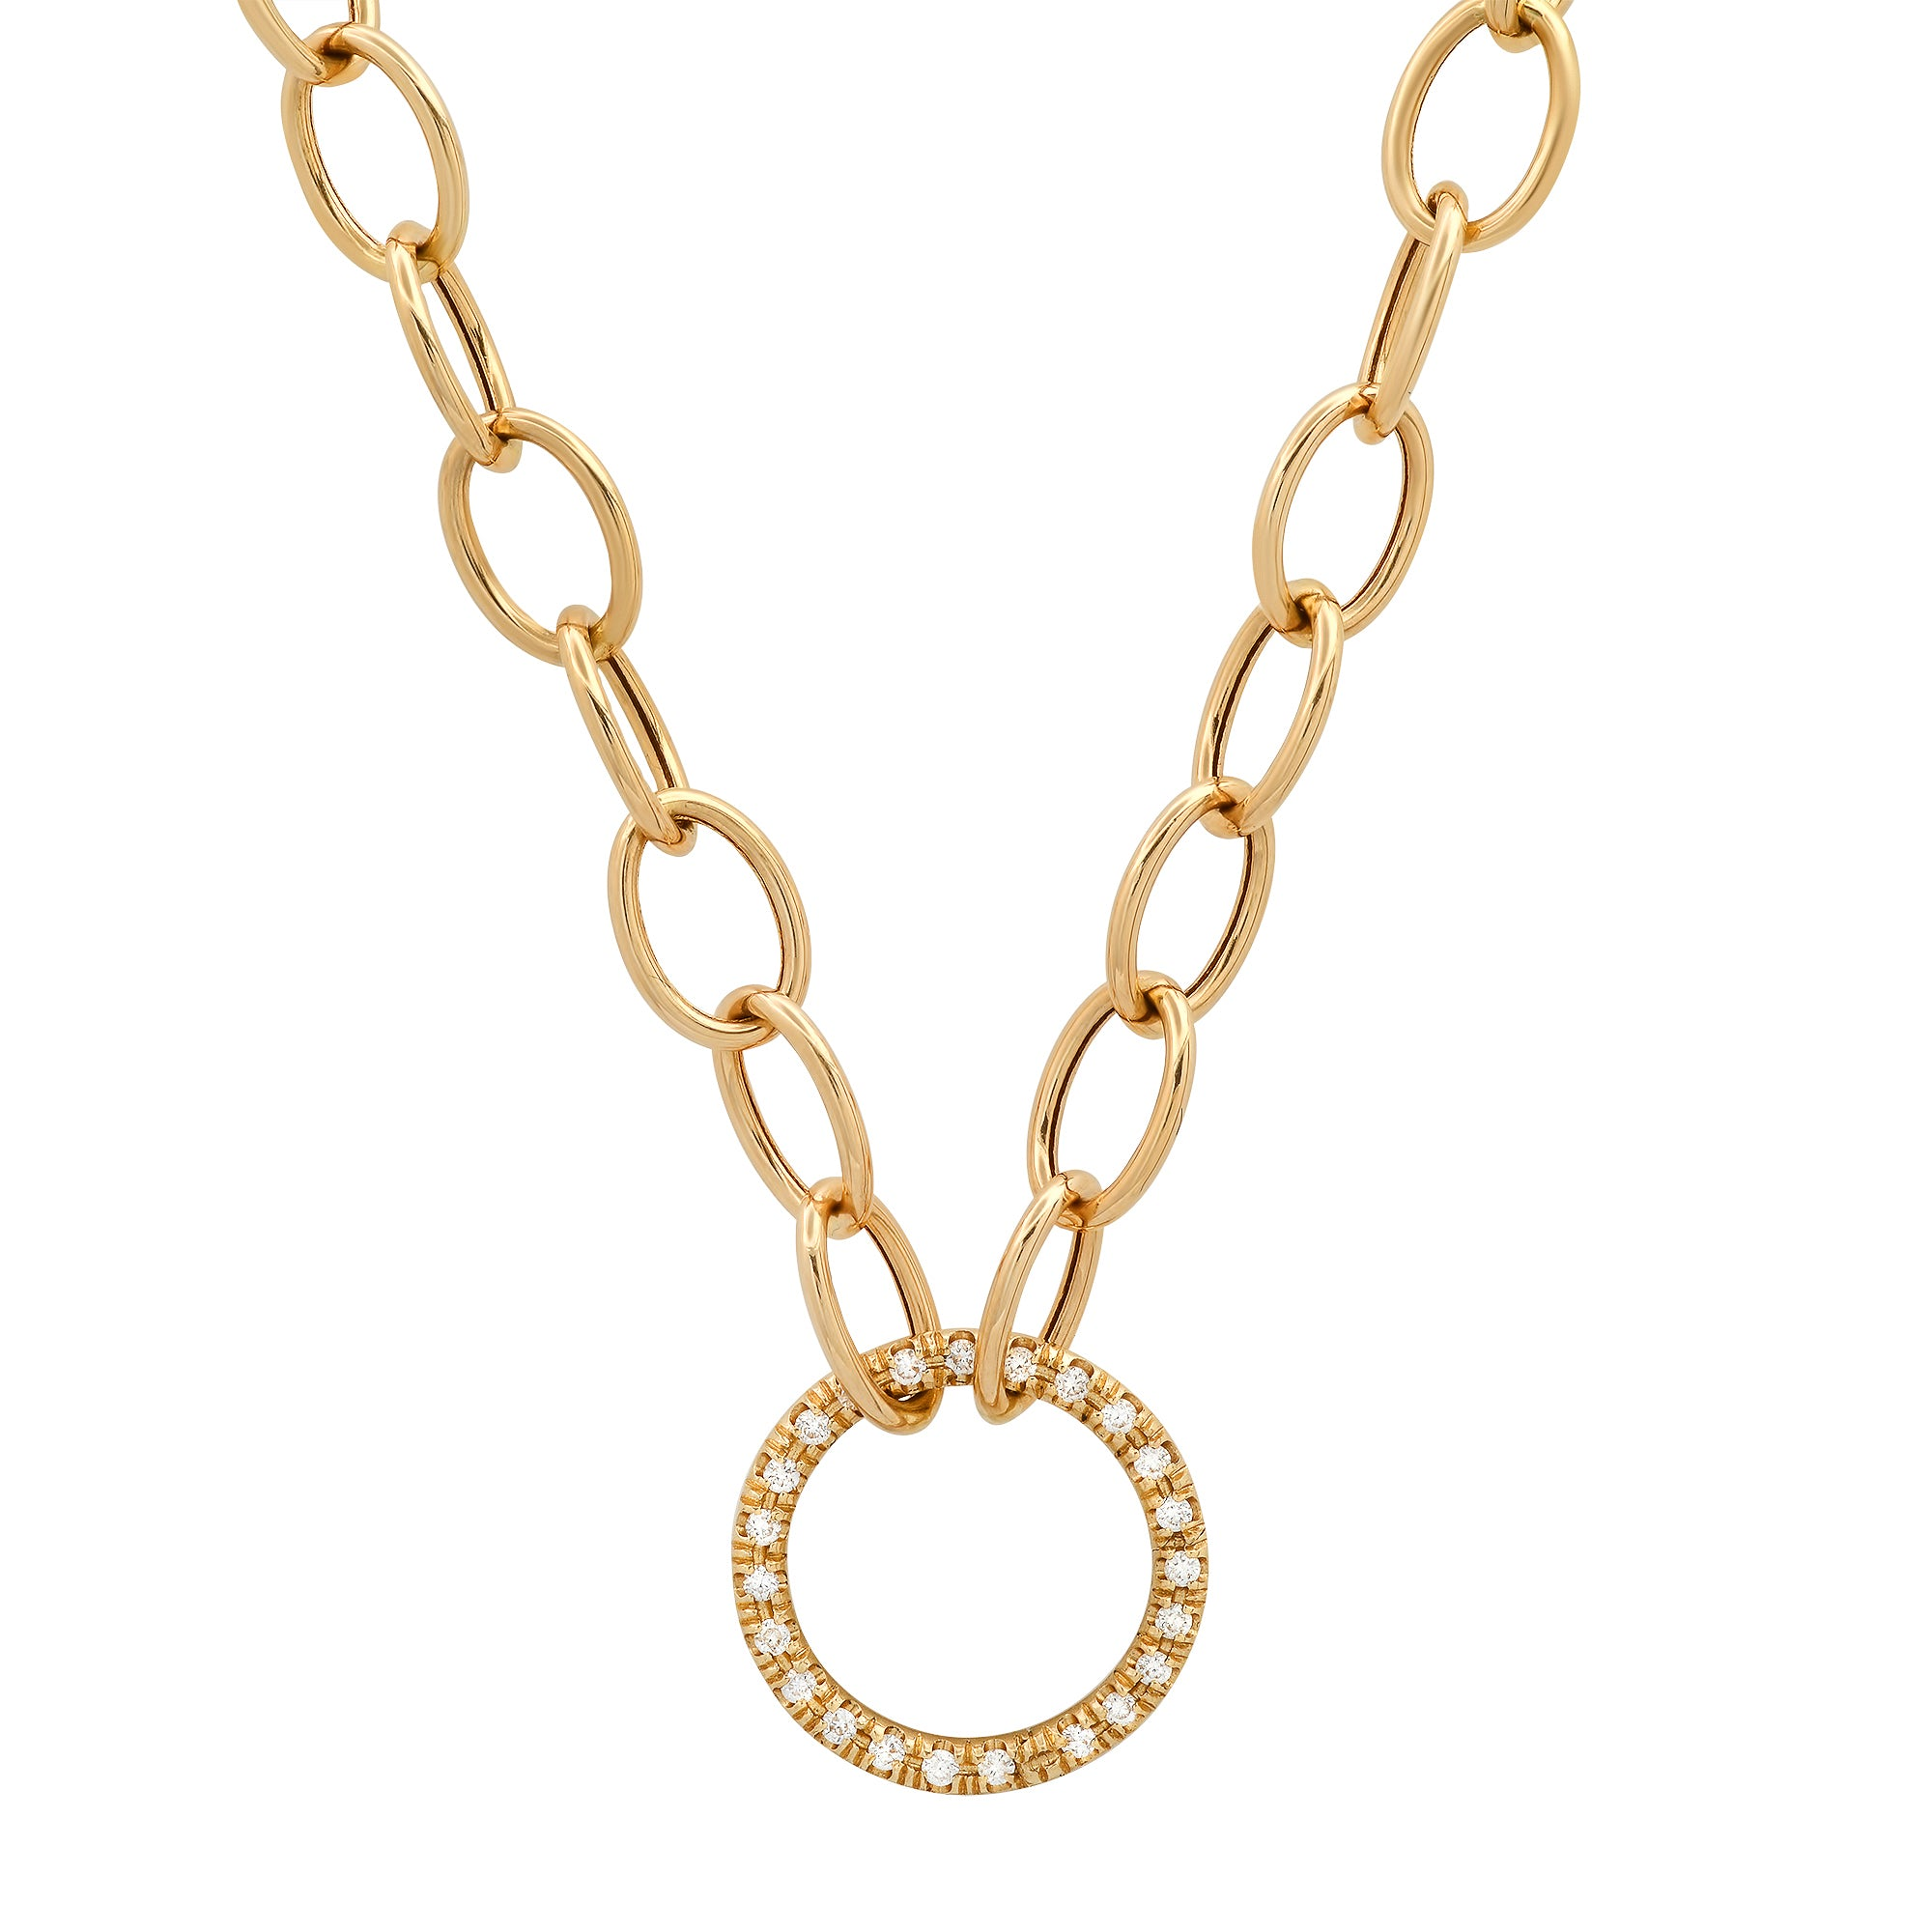 Toggle Chain with Diamond Gold Charm Ring Holder